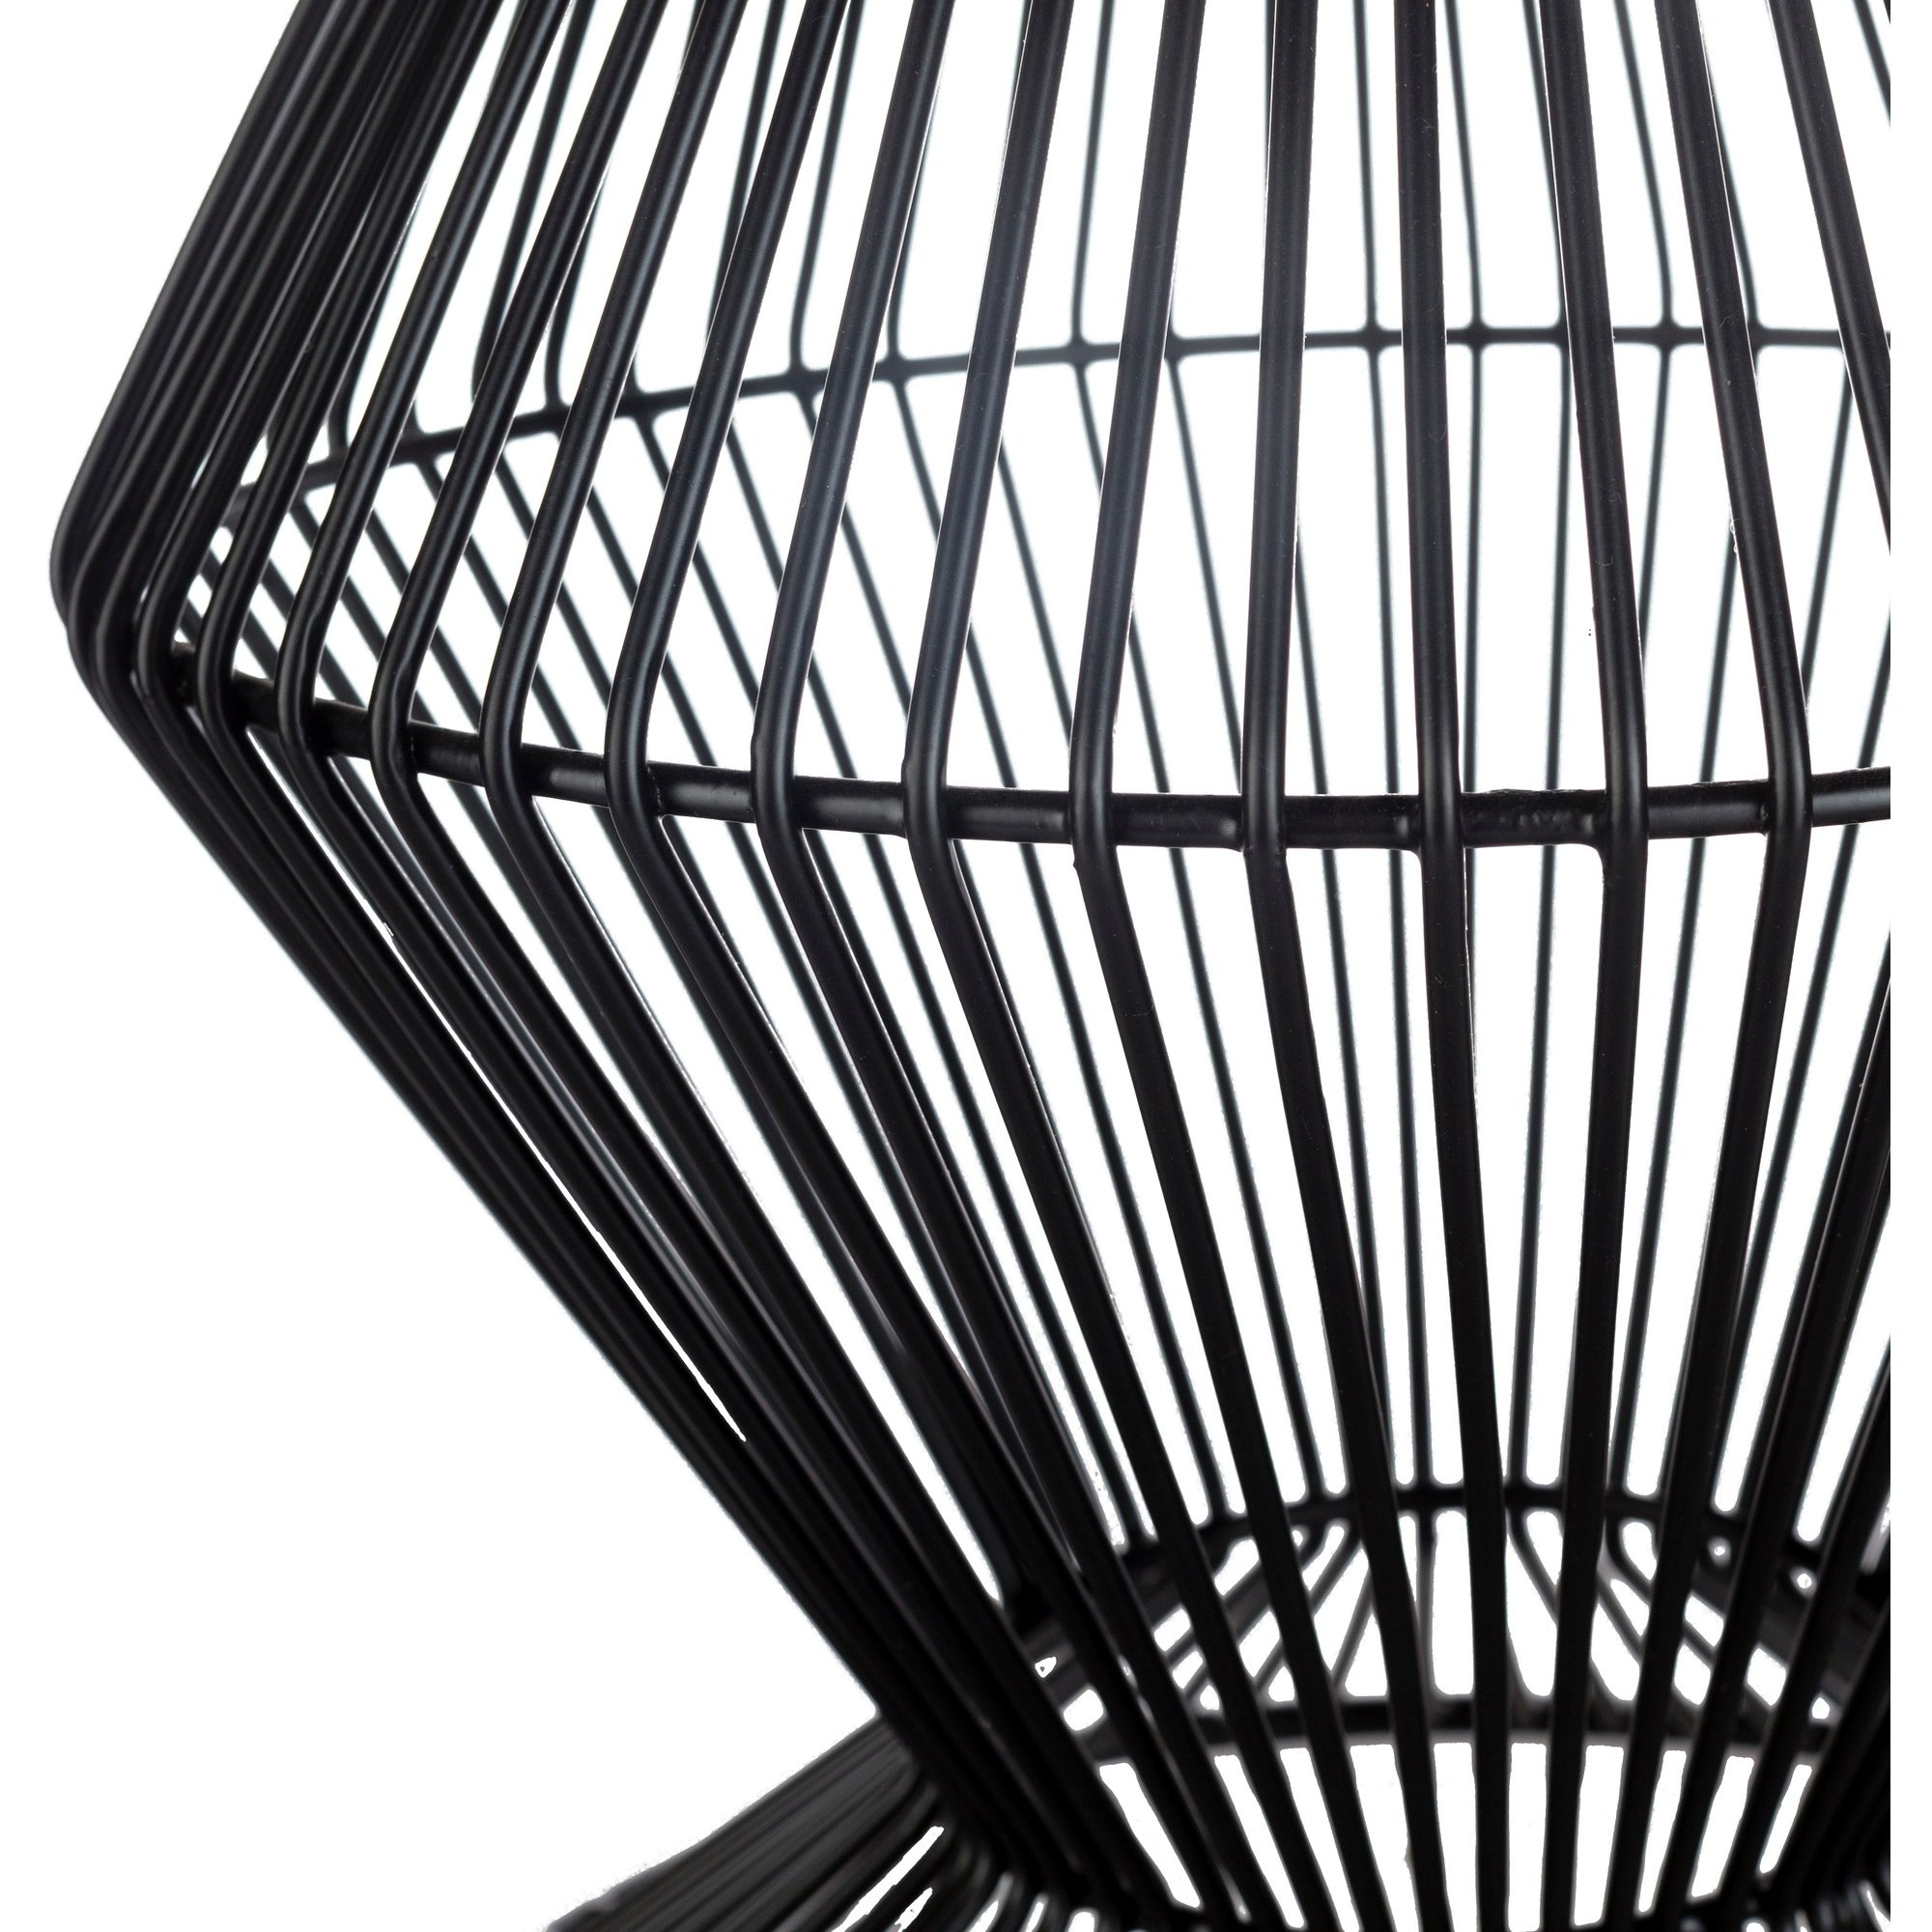 ryder black modern metal wire accent table free small shipping today grooming target student desk light wood sofa and coffee door threshold drum end with storage circular outdoor